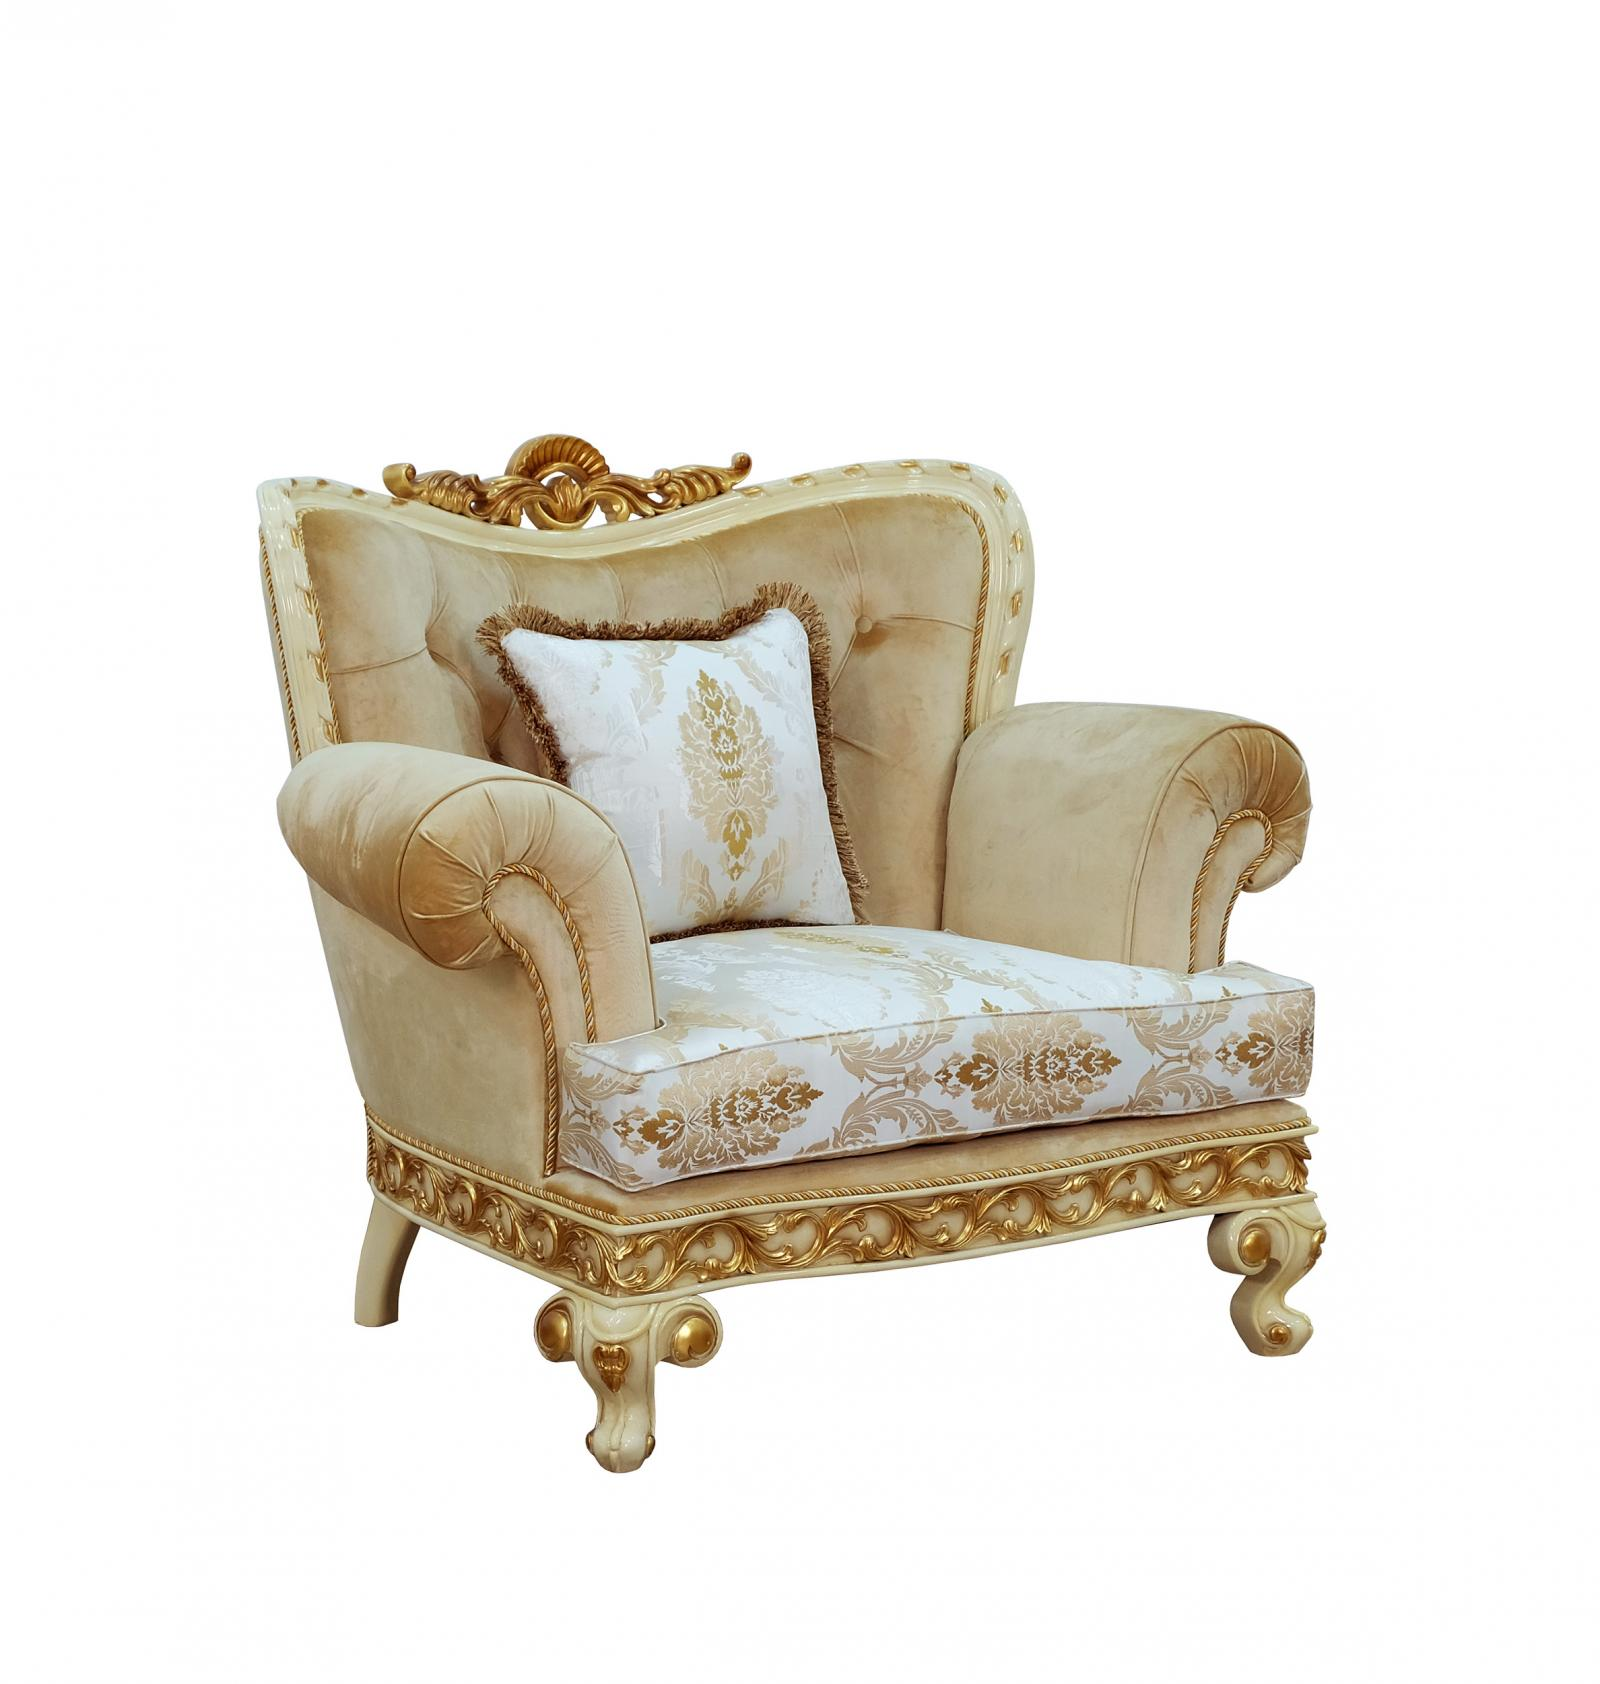 Classic  Traditional Gold  Sand  Off-White Wood  Solid Hardwood and Fabric Arm Chair EUROPEAN FURNITURE 40015-C